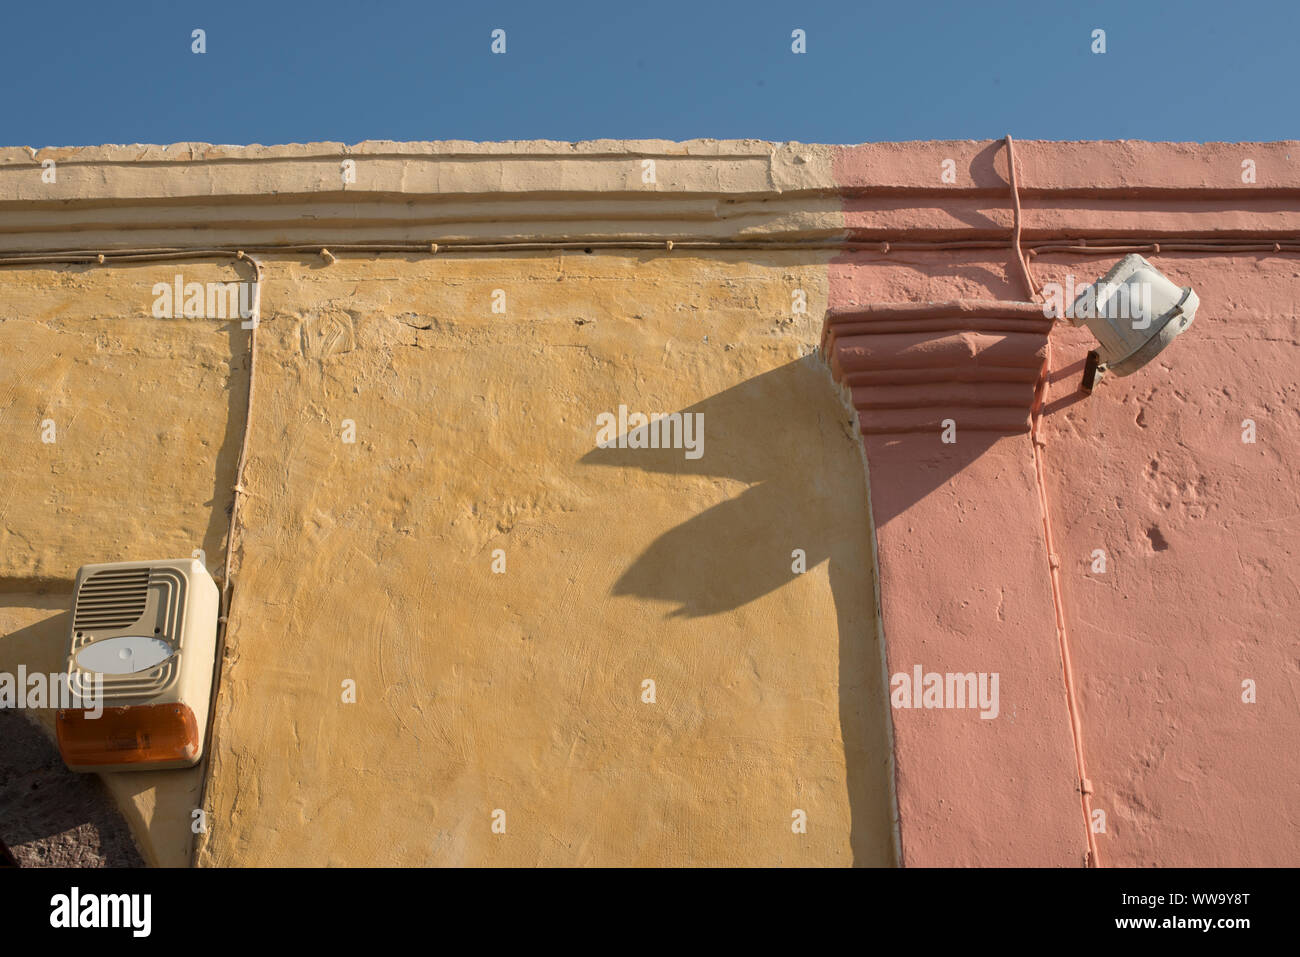 Santorini, Greece - June 24, 2018: Yellow and pink painted walls in the historic town of Oia, a popular tourist destination on the northern end of San Stock Photo